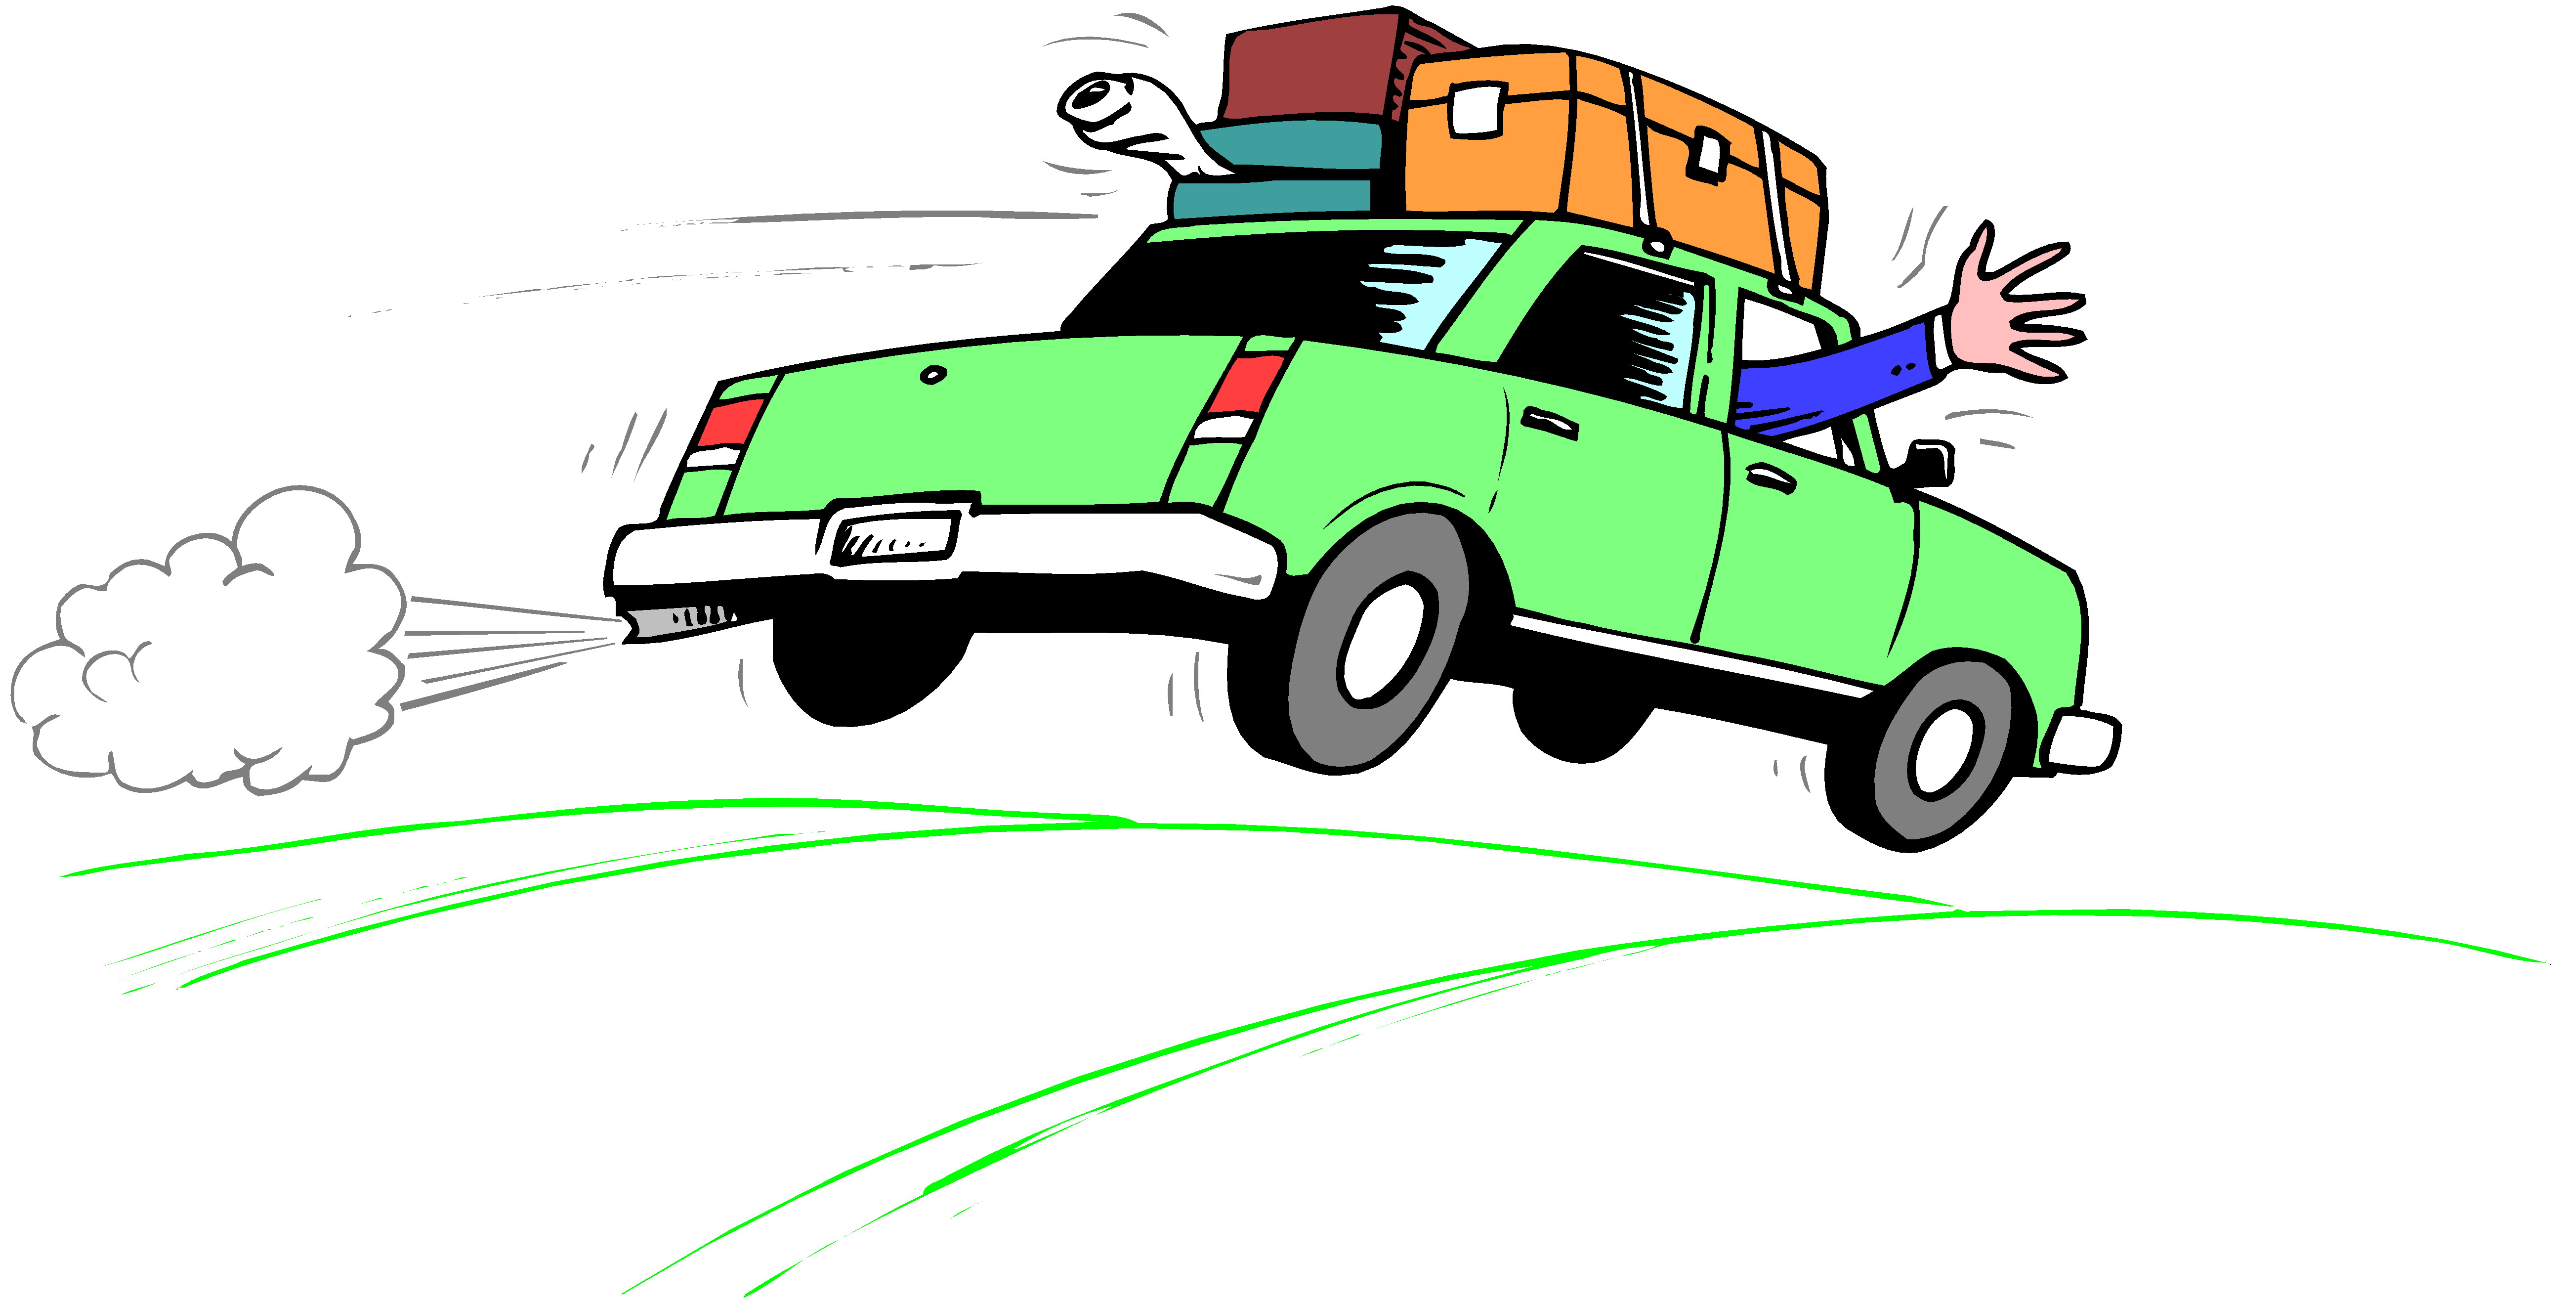 car in motion clipart 20 free Cliparts | Download images ...